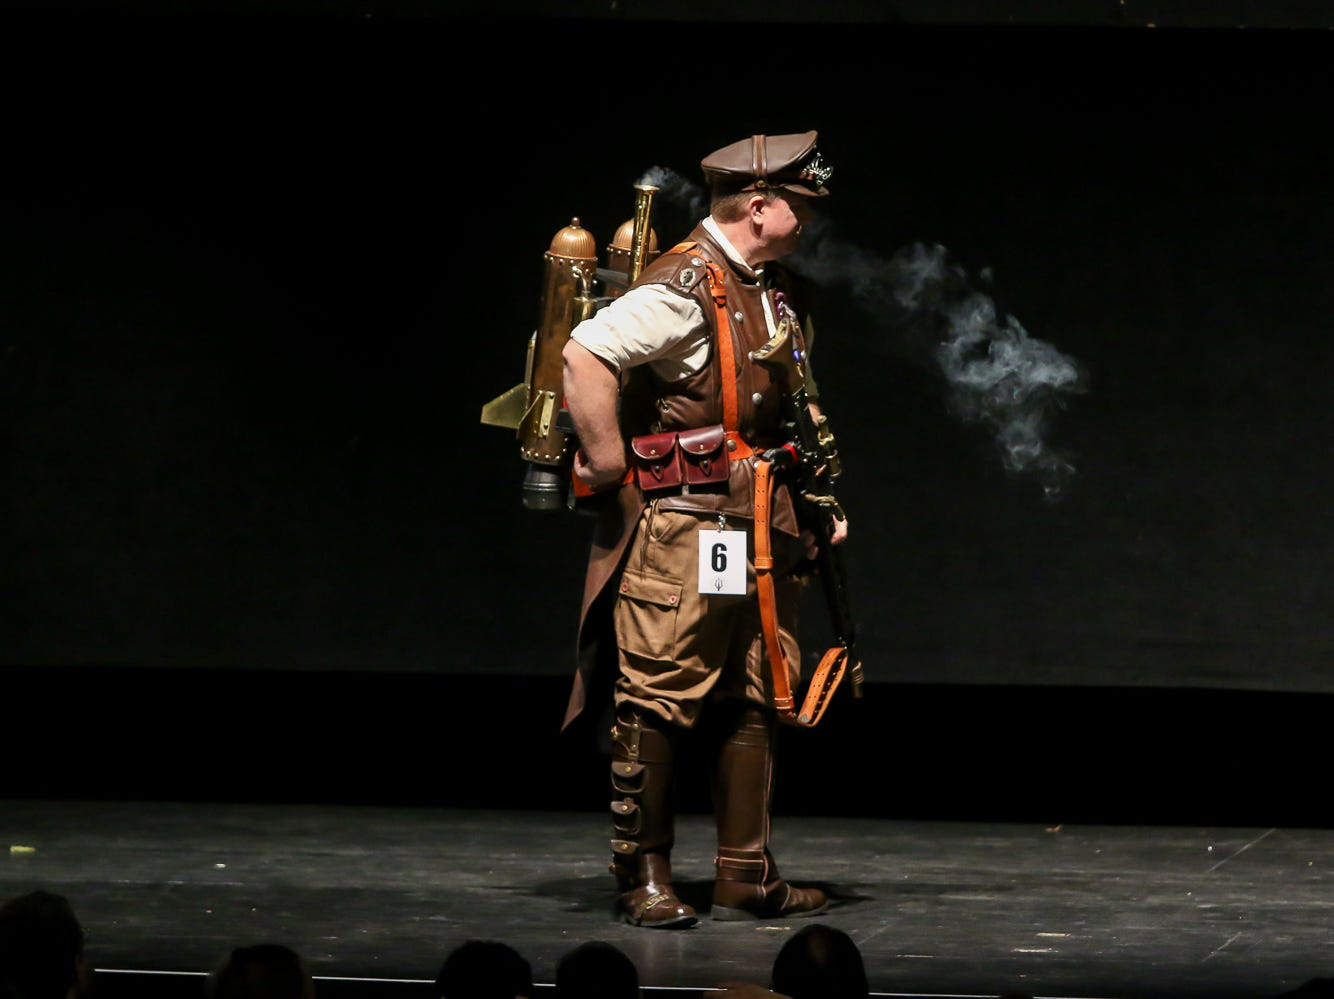 People compete in the Journeyman Division of the Pensacon cosplay contest presented by McGuire's Irish Pub at the Saenger Theatre on Saturday, February 23, 2019.